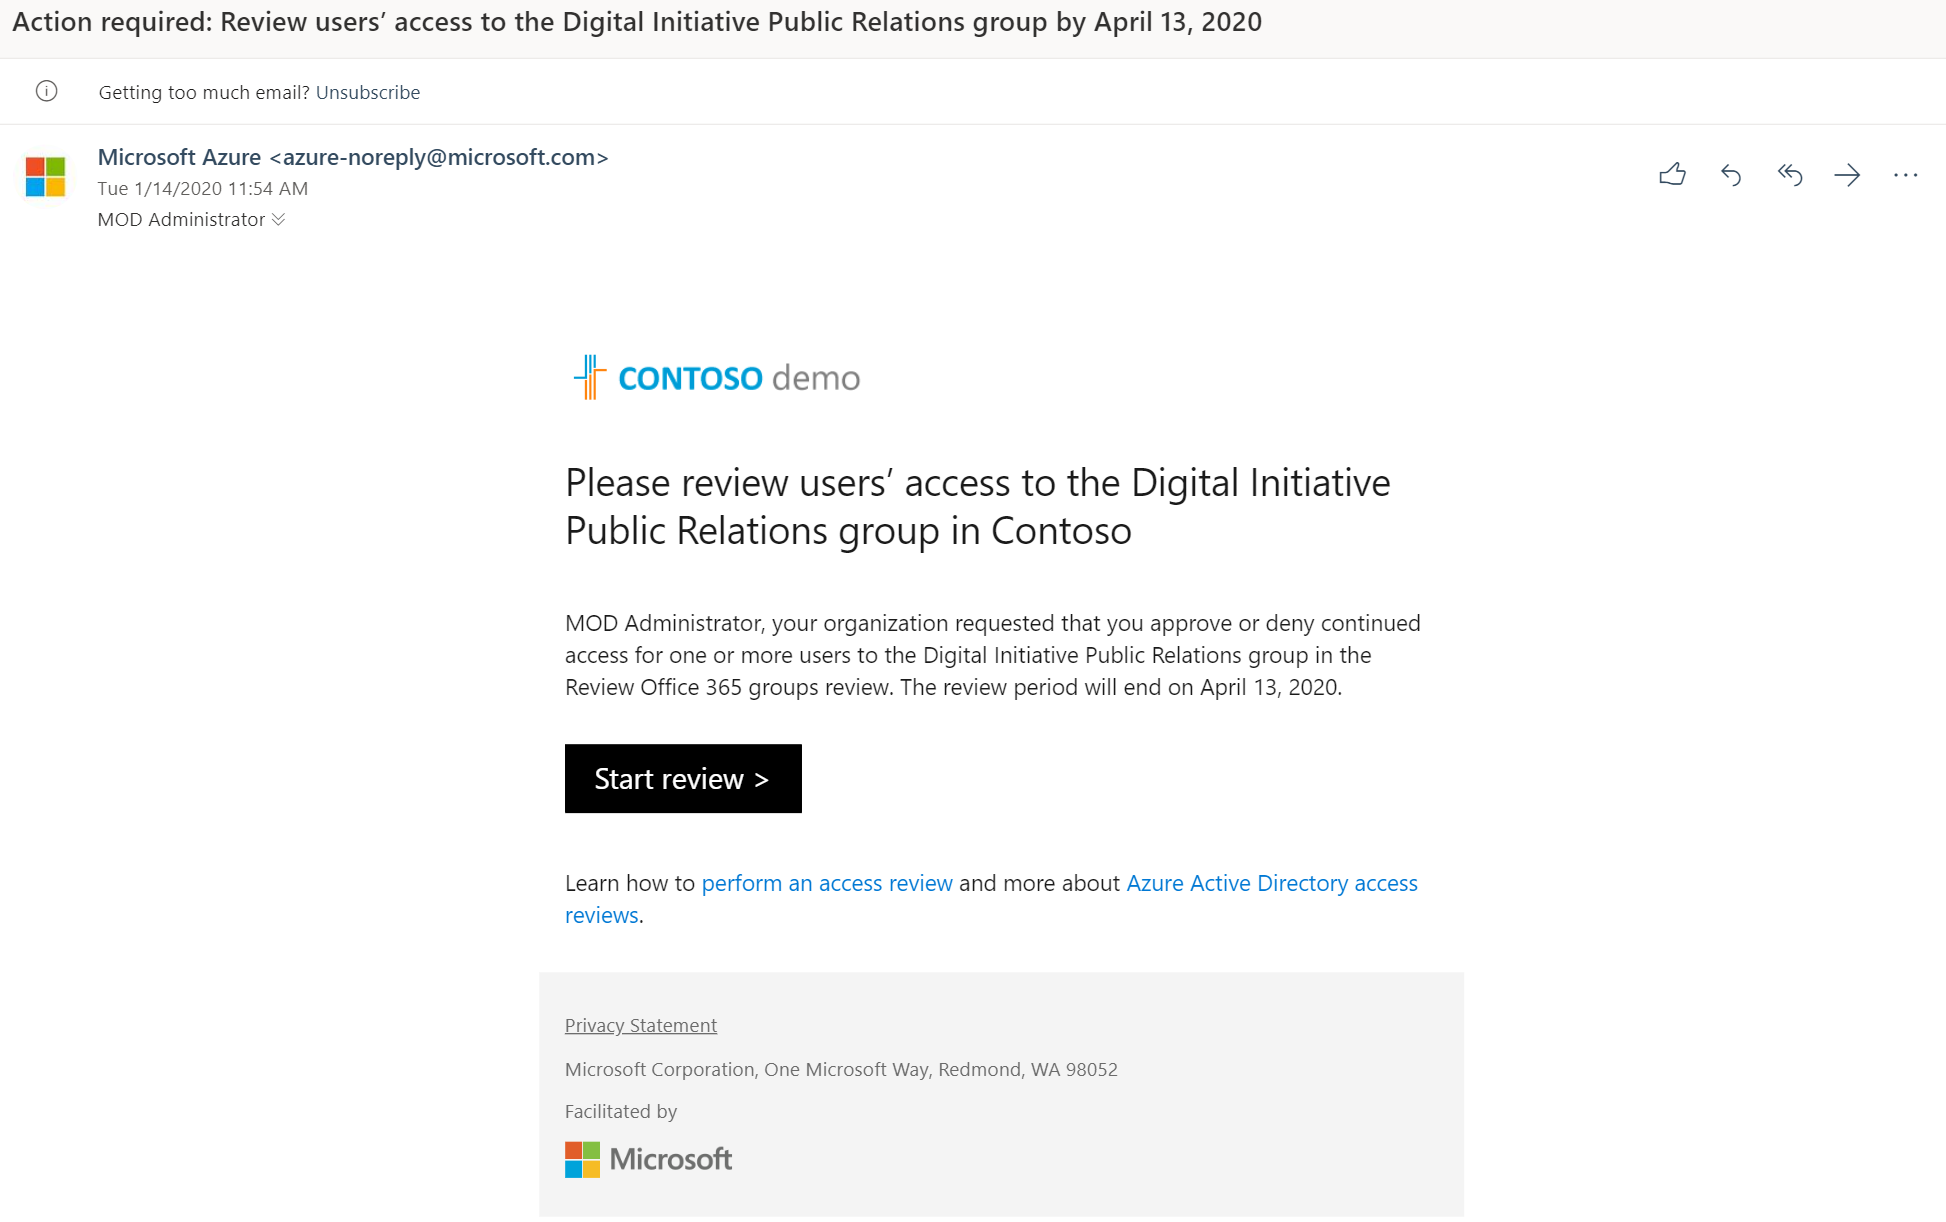 Contoso demo please review users access